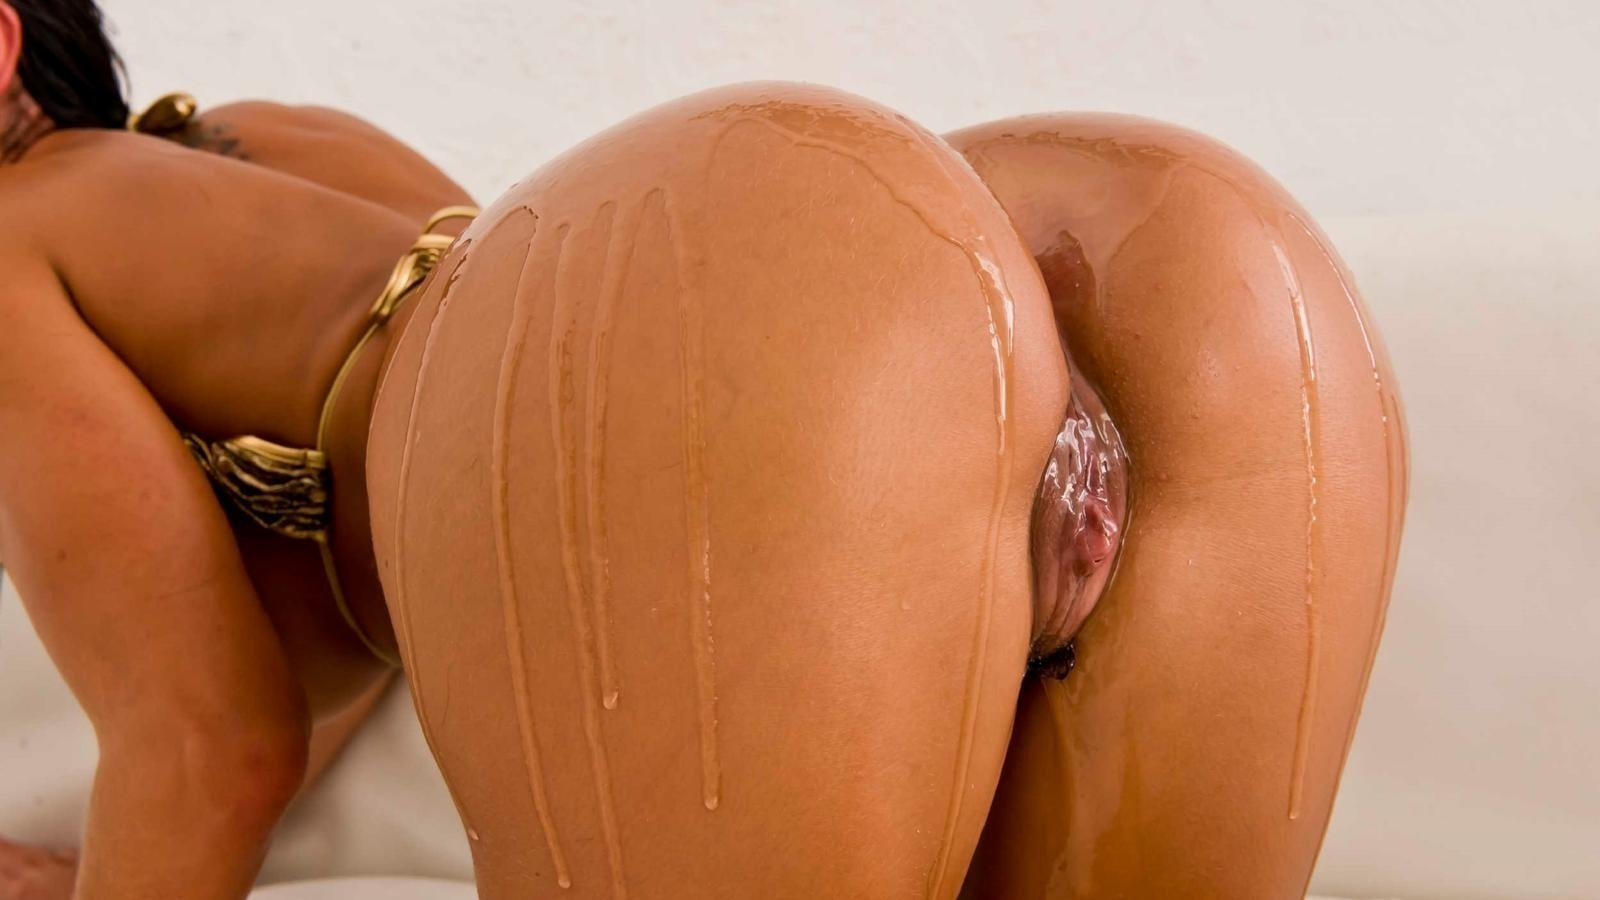 Long hair latina babe oiled up bare ass and pussy